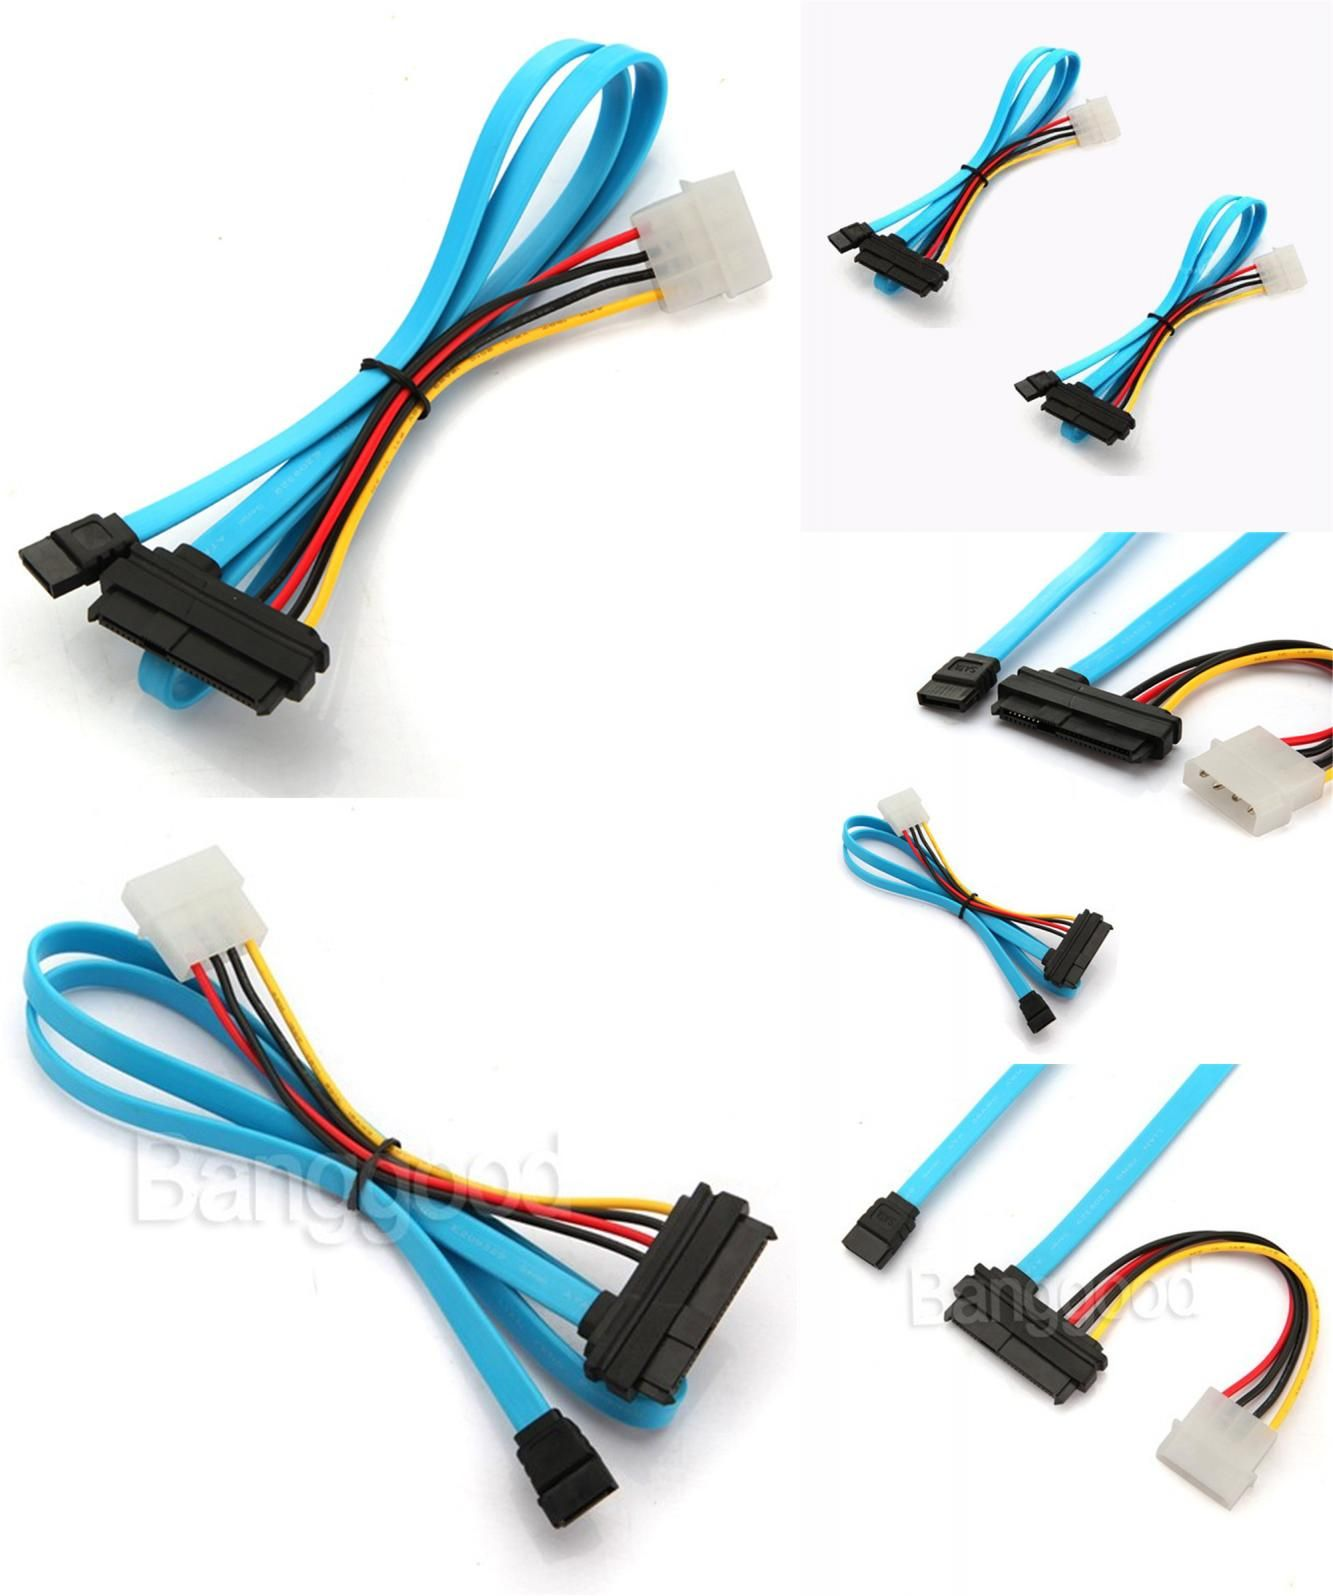 small resolution of  visit to buy 1pcs 7 pin sata serial female ata to sas 29 pin connector cable 4 pin male power cable adapter converter for hard disk drive advertisement